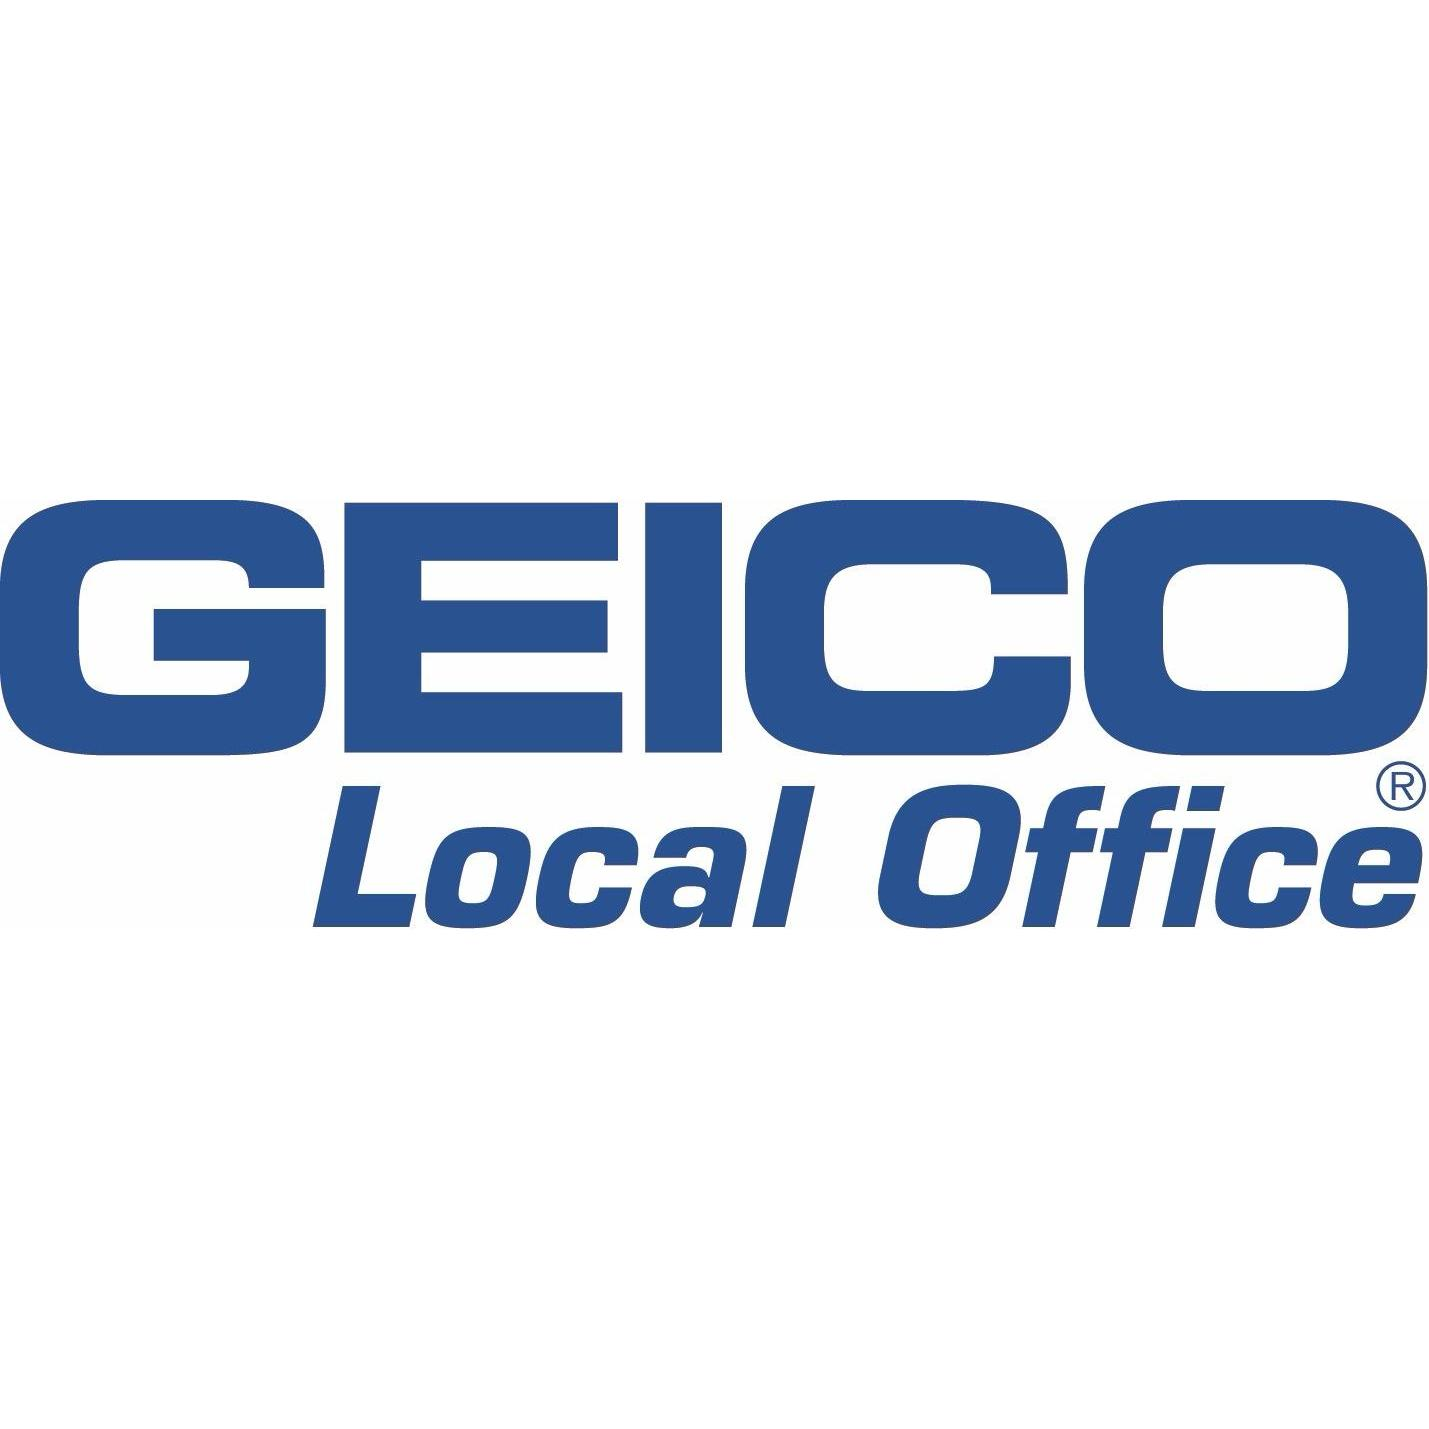 Geico Insurance Agent - Universal City, TX 78148 - (210) 658-6268 | ShowMeLocal.com